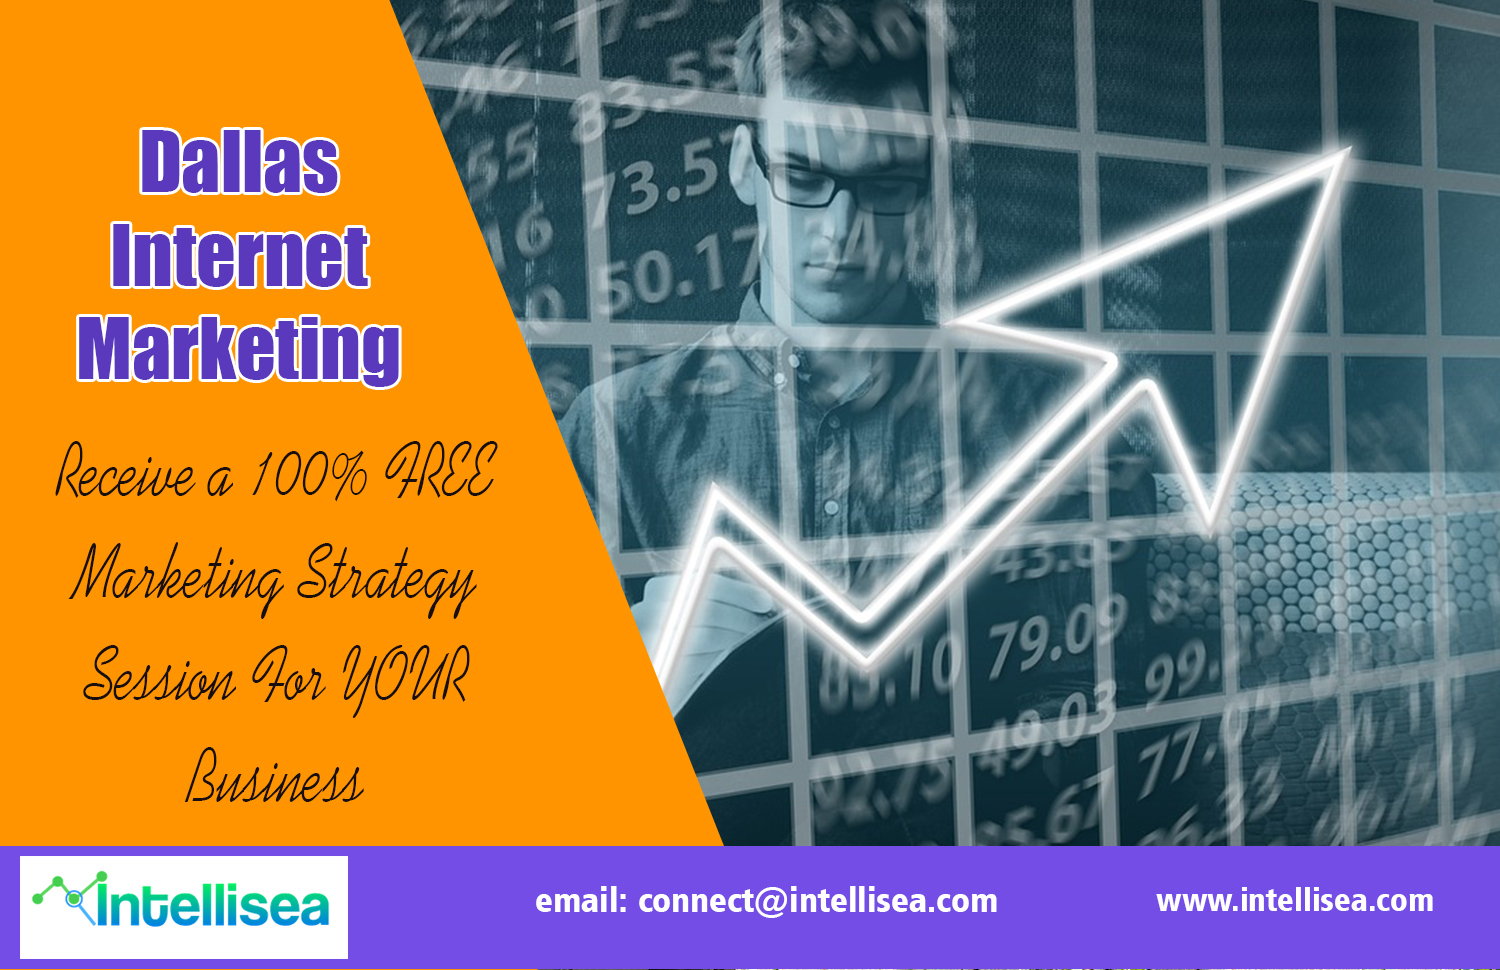 Dallas Internet Marketing